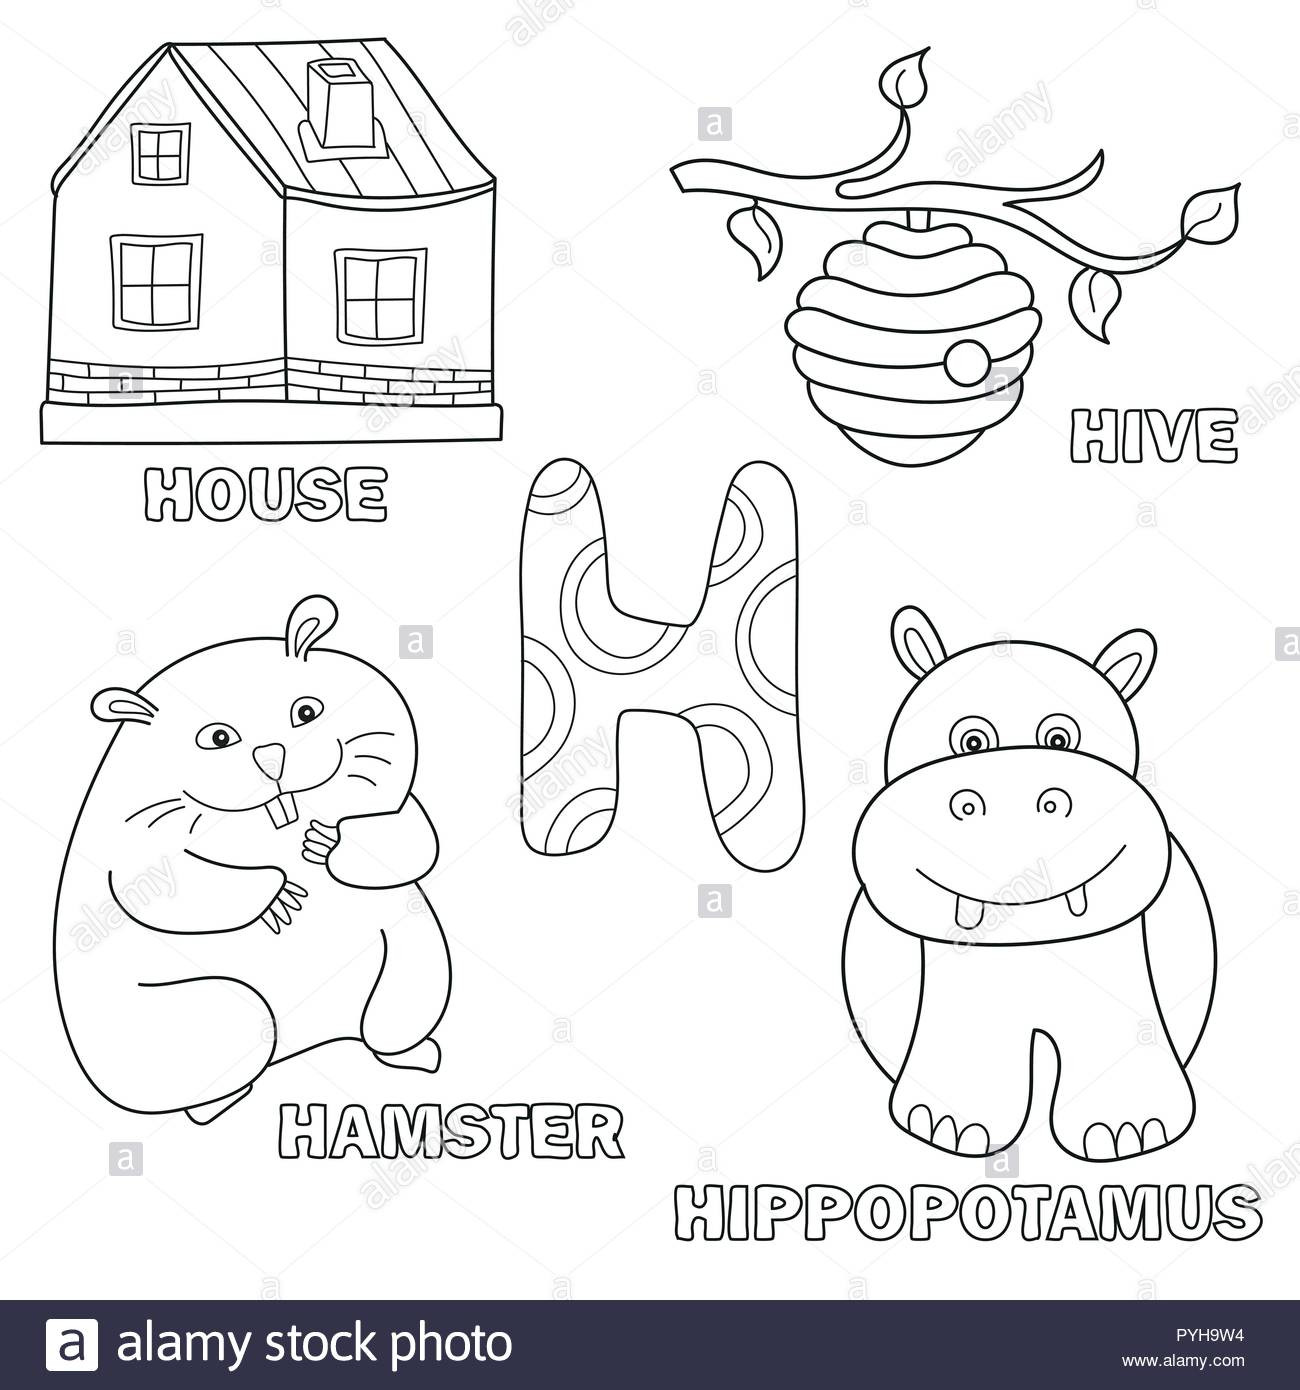 Preschool Letter H Worksheets Kids Alphabet Coloring Book Page with Outlined Clip Arts